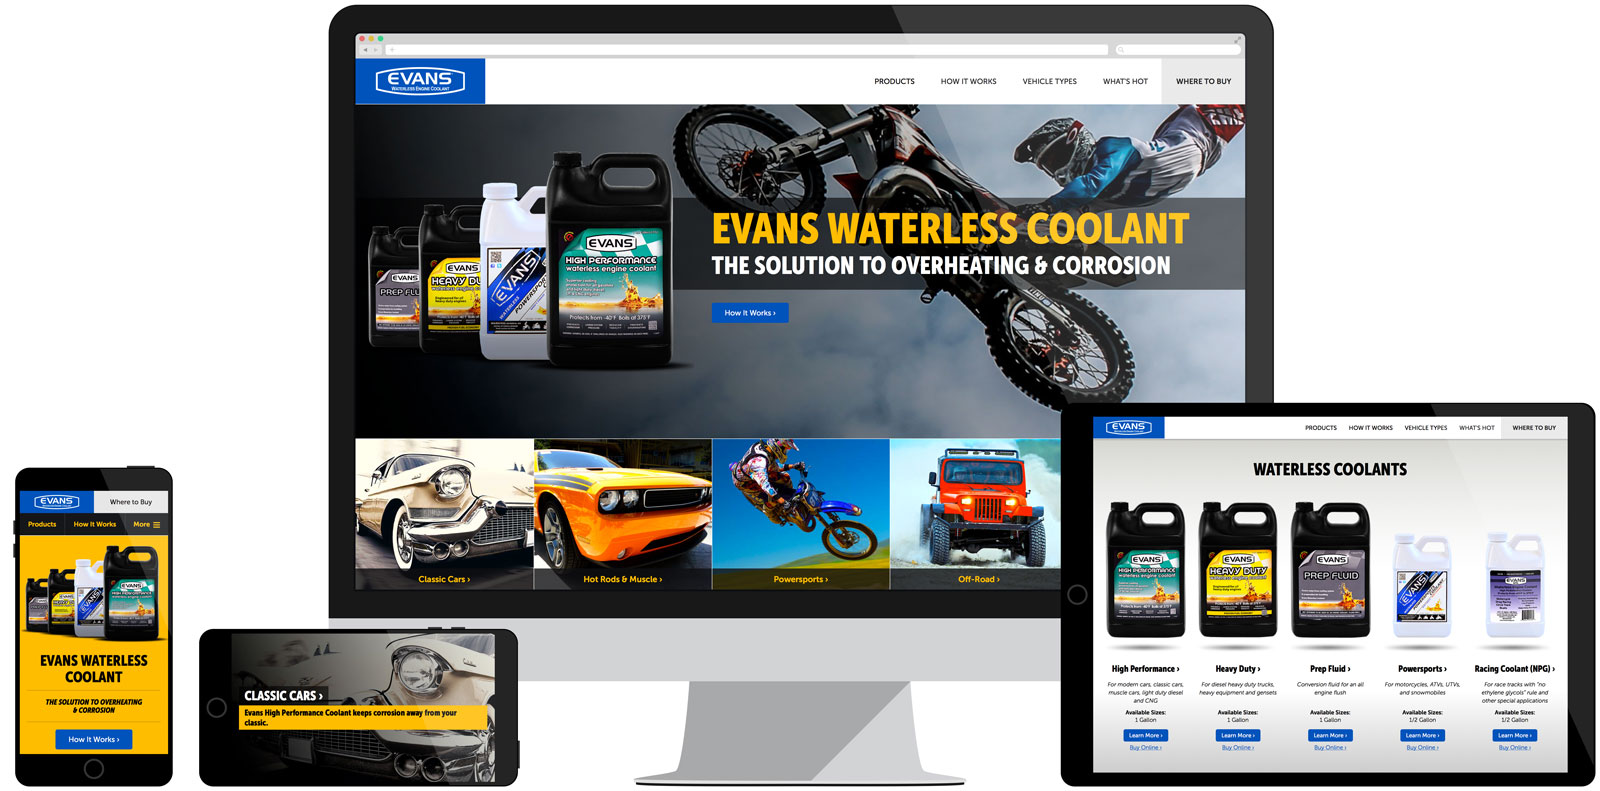 Evans Waterless Coolant Website Development